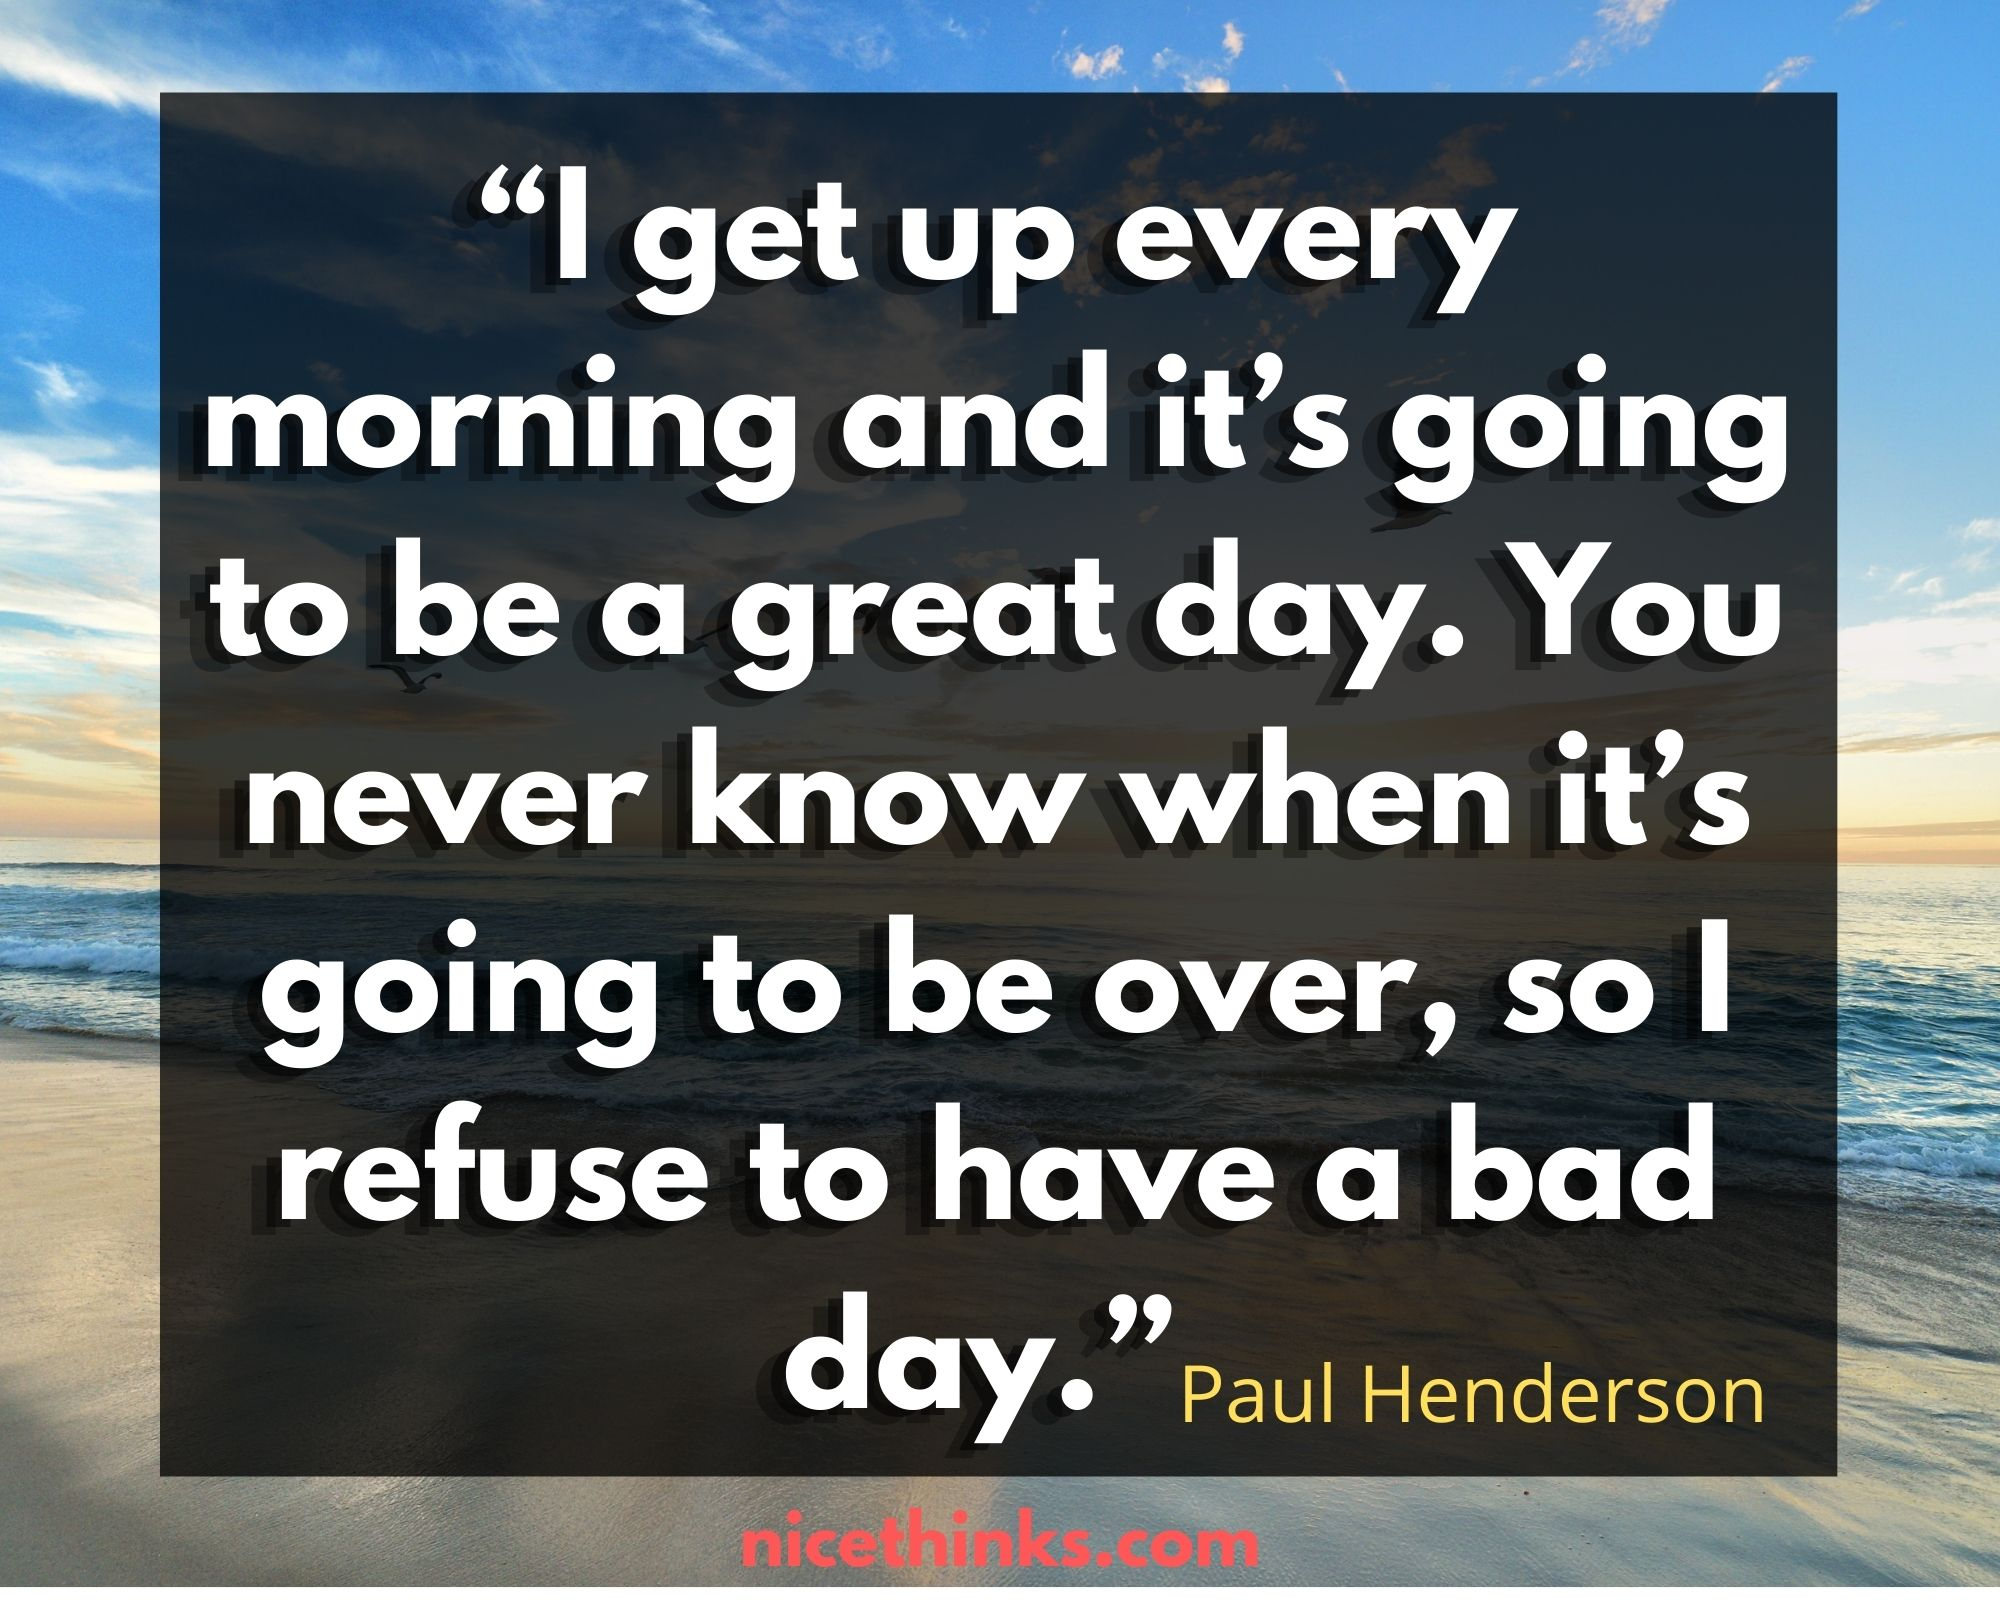 Quotes by Paul Henderson